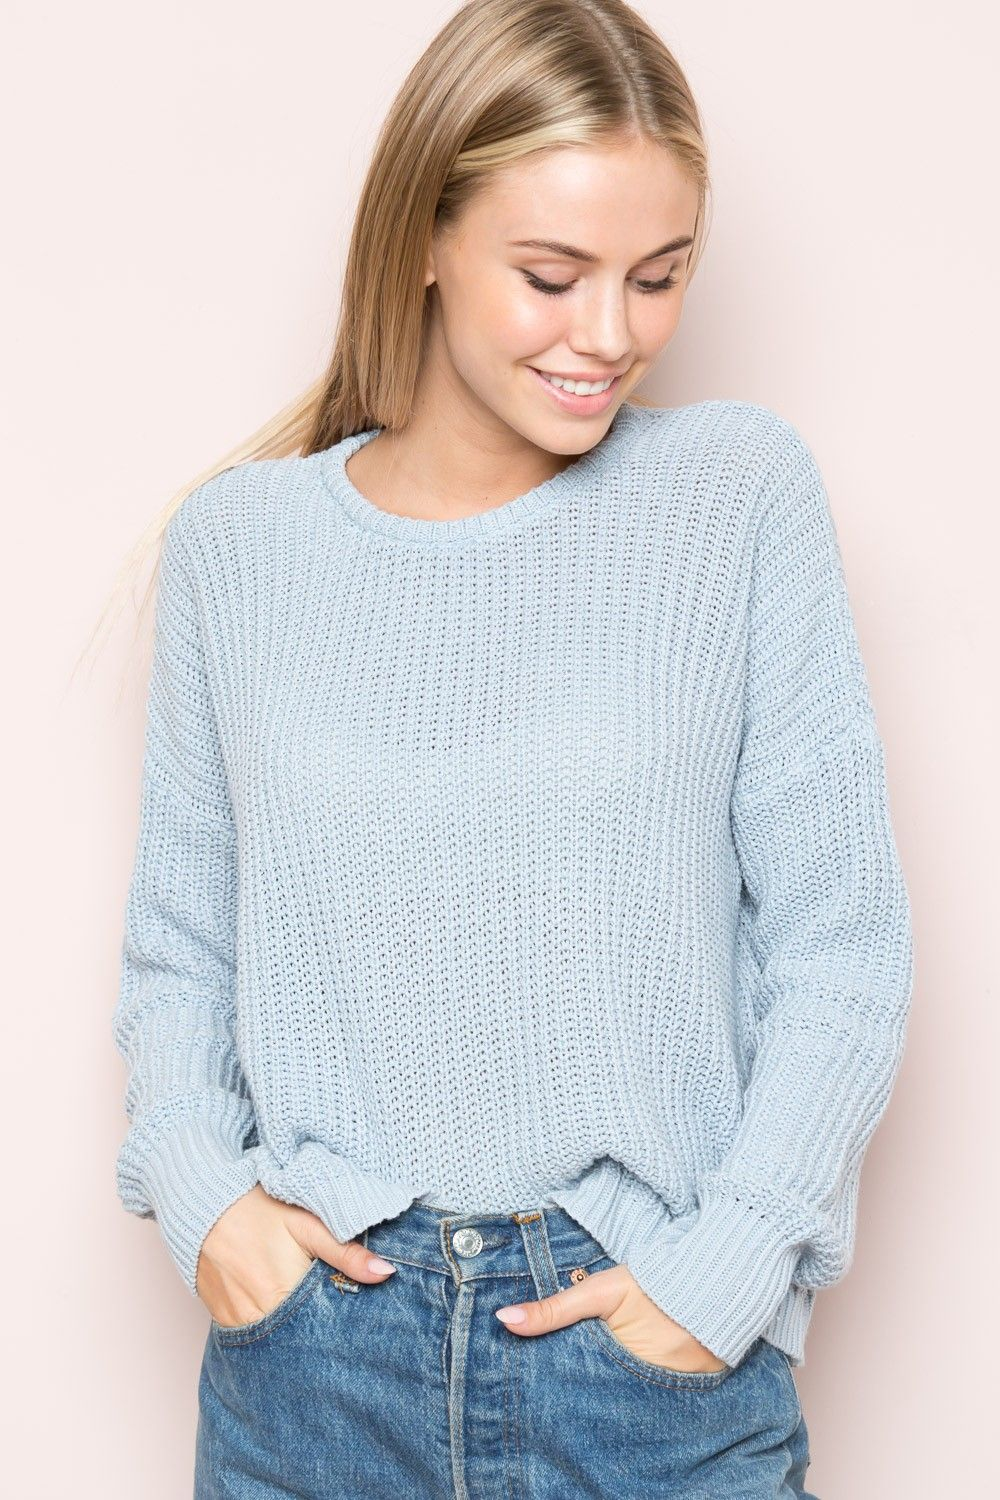 Brandy ♥ Melville | Bronx Sweater - Pullovers - Sweaters ...